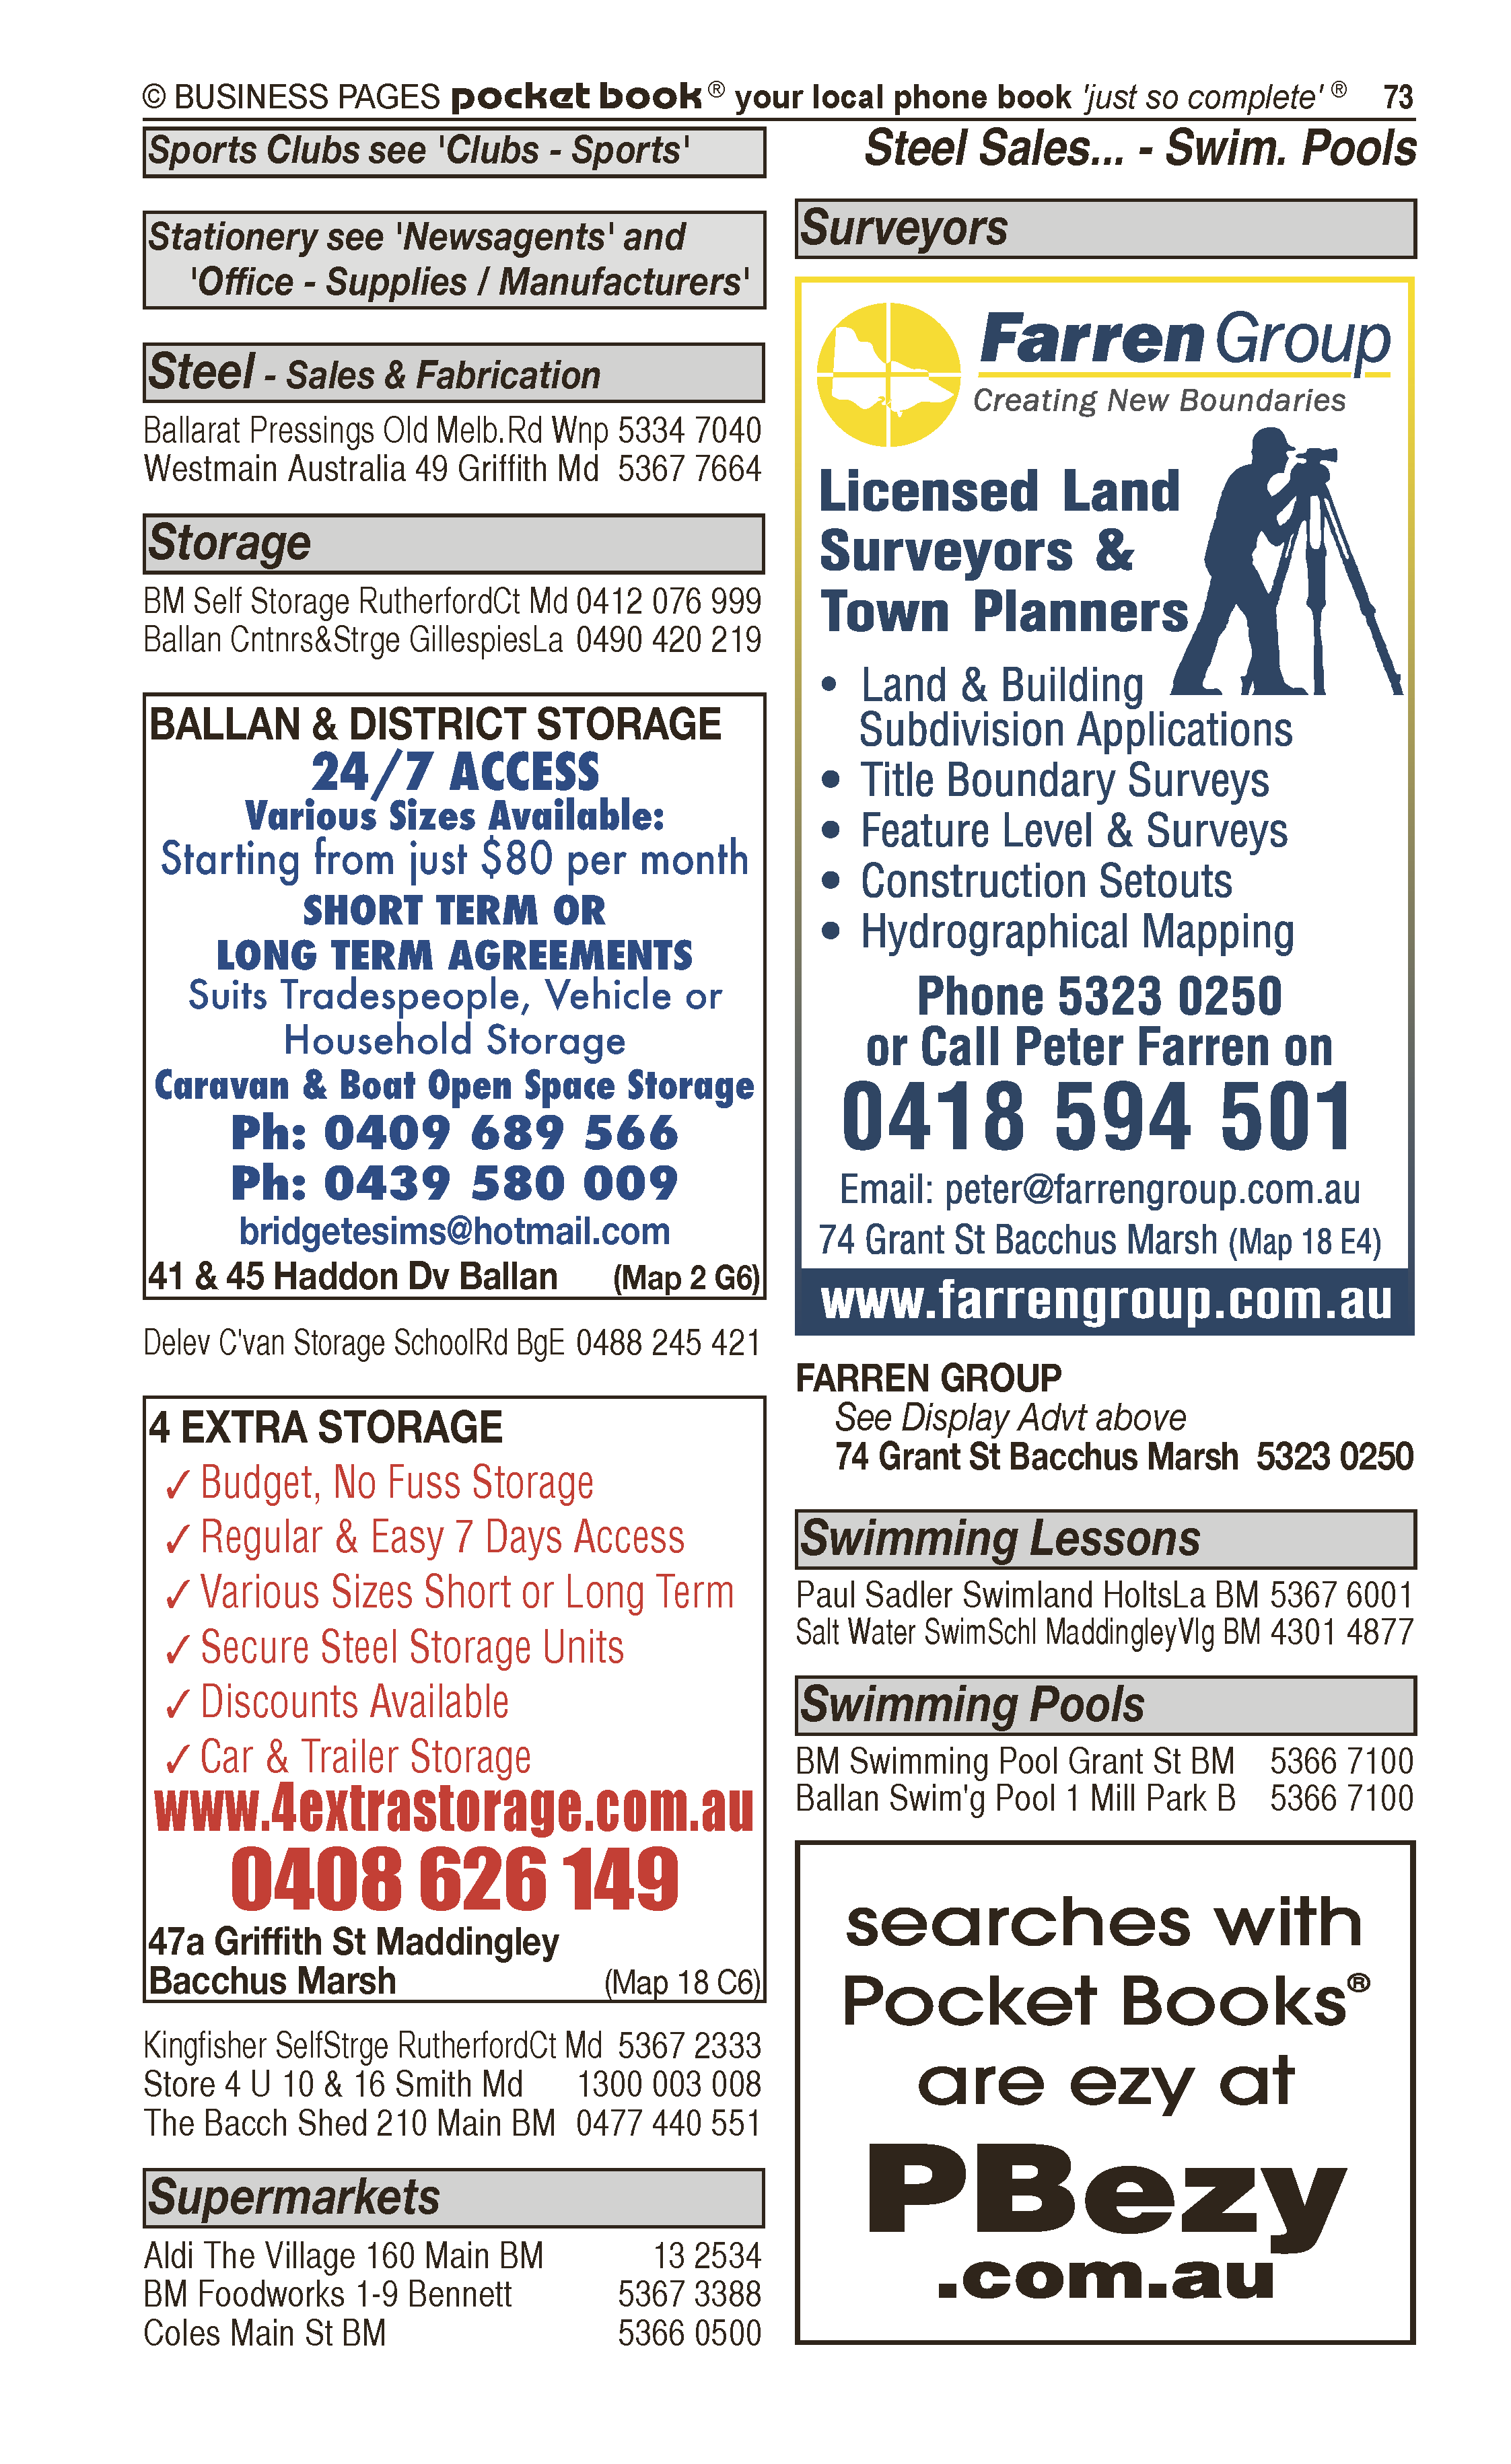 Maddingley Brown Coal Pty Ltd in Bacchus Marsh VIC - page 73